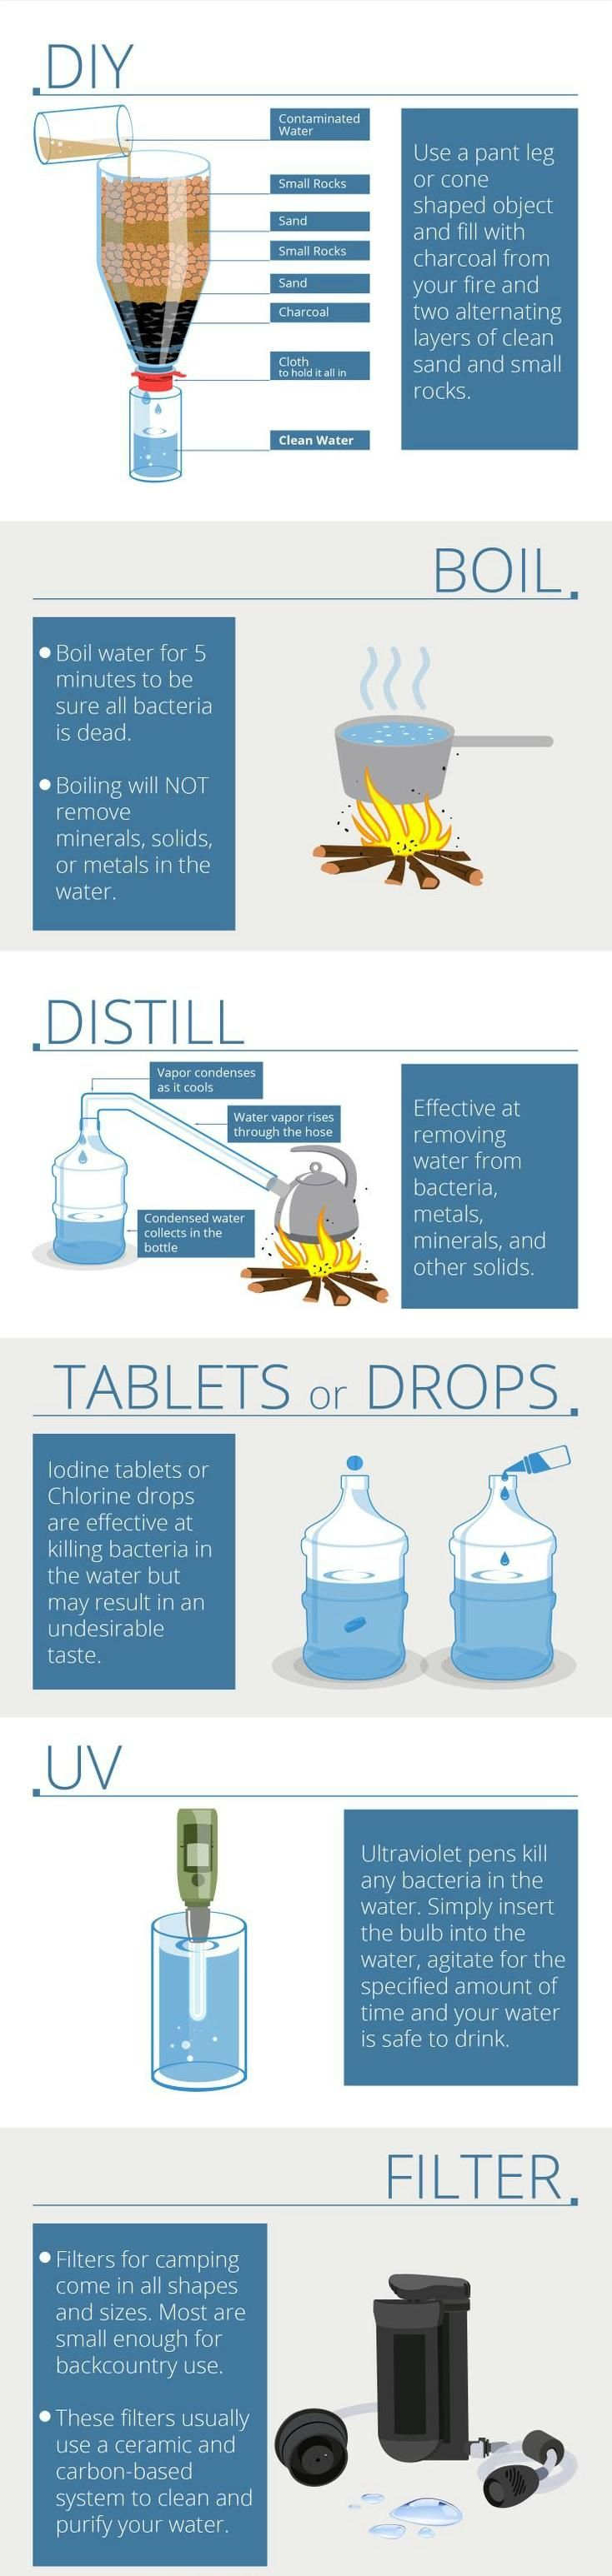 Never drink distilled water there are no minerals and stuff, it's not healthy it's used otherwise.